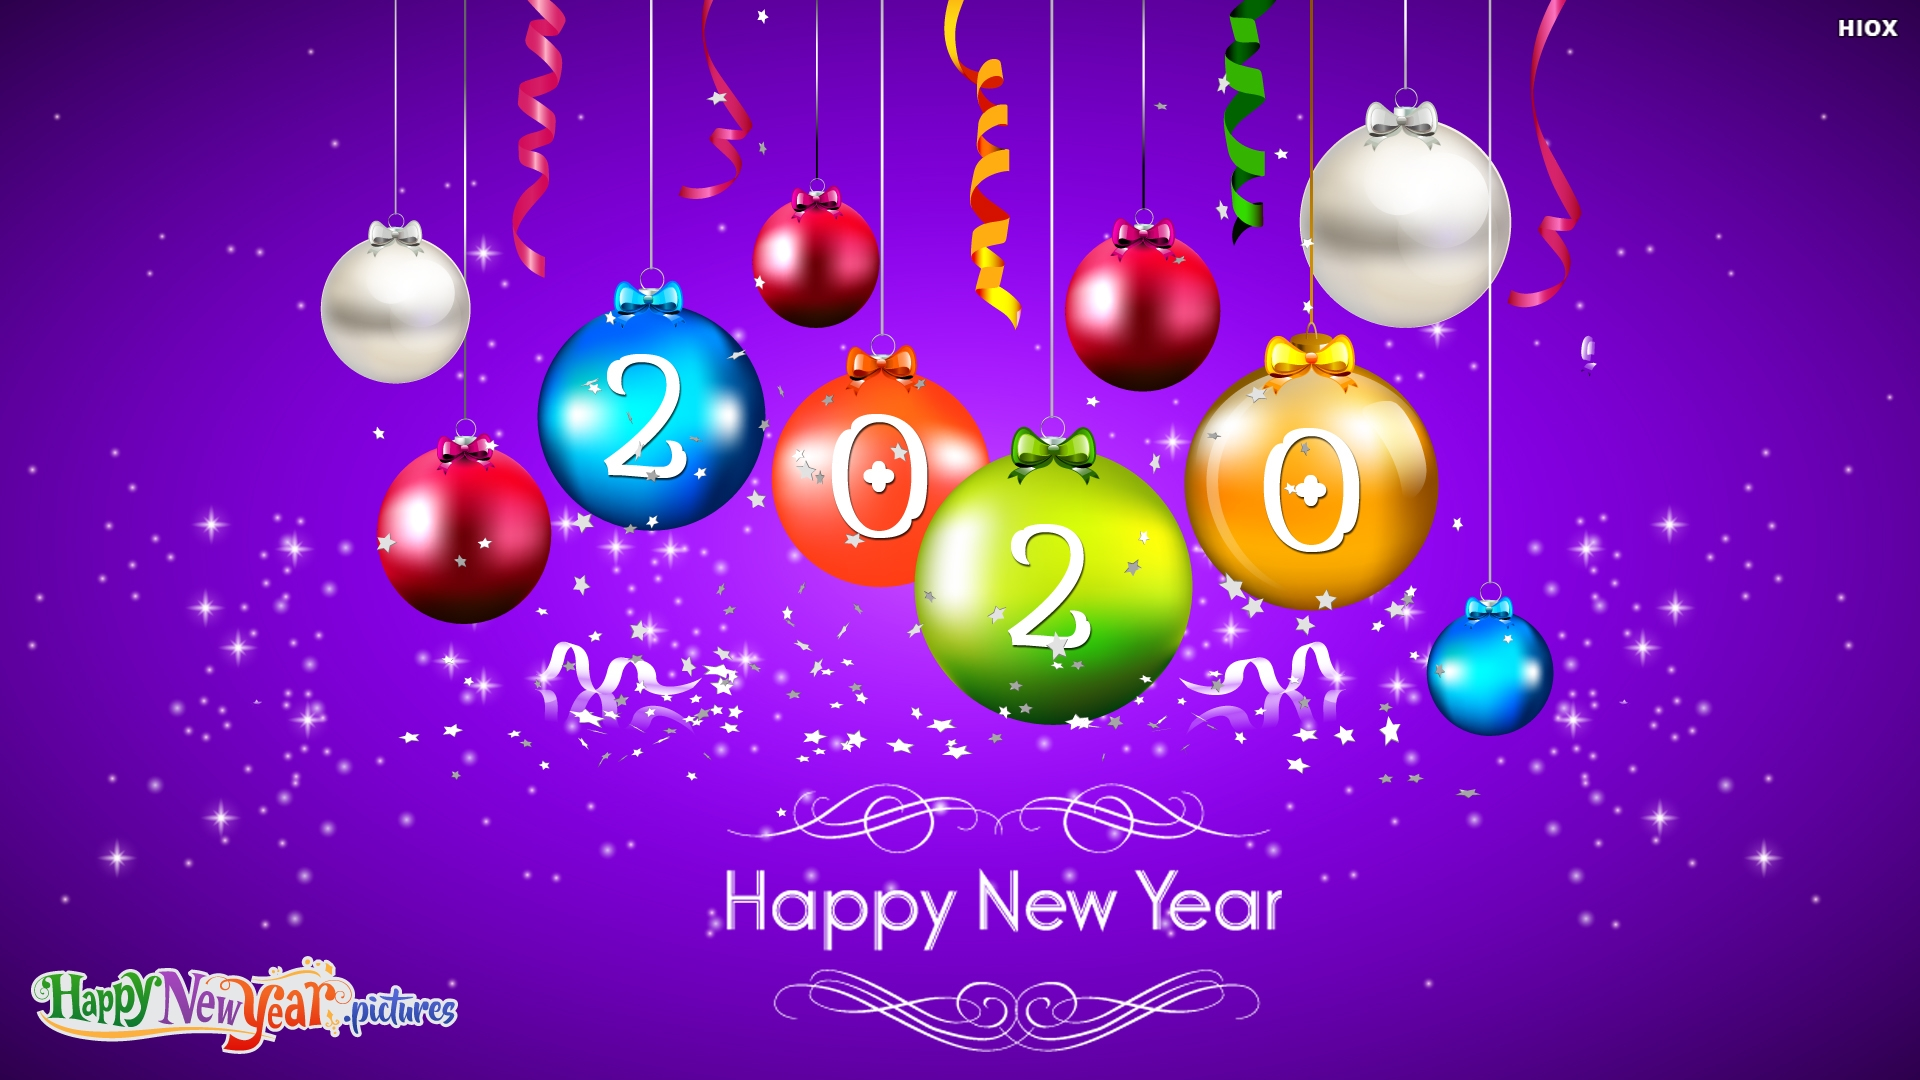 Colorful Happy New Year Wishes Dear Friends